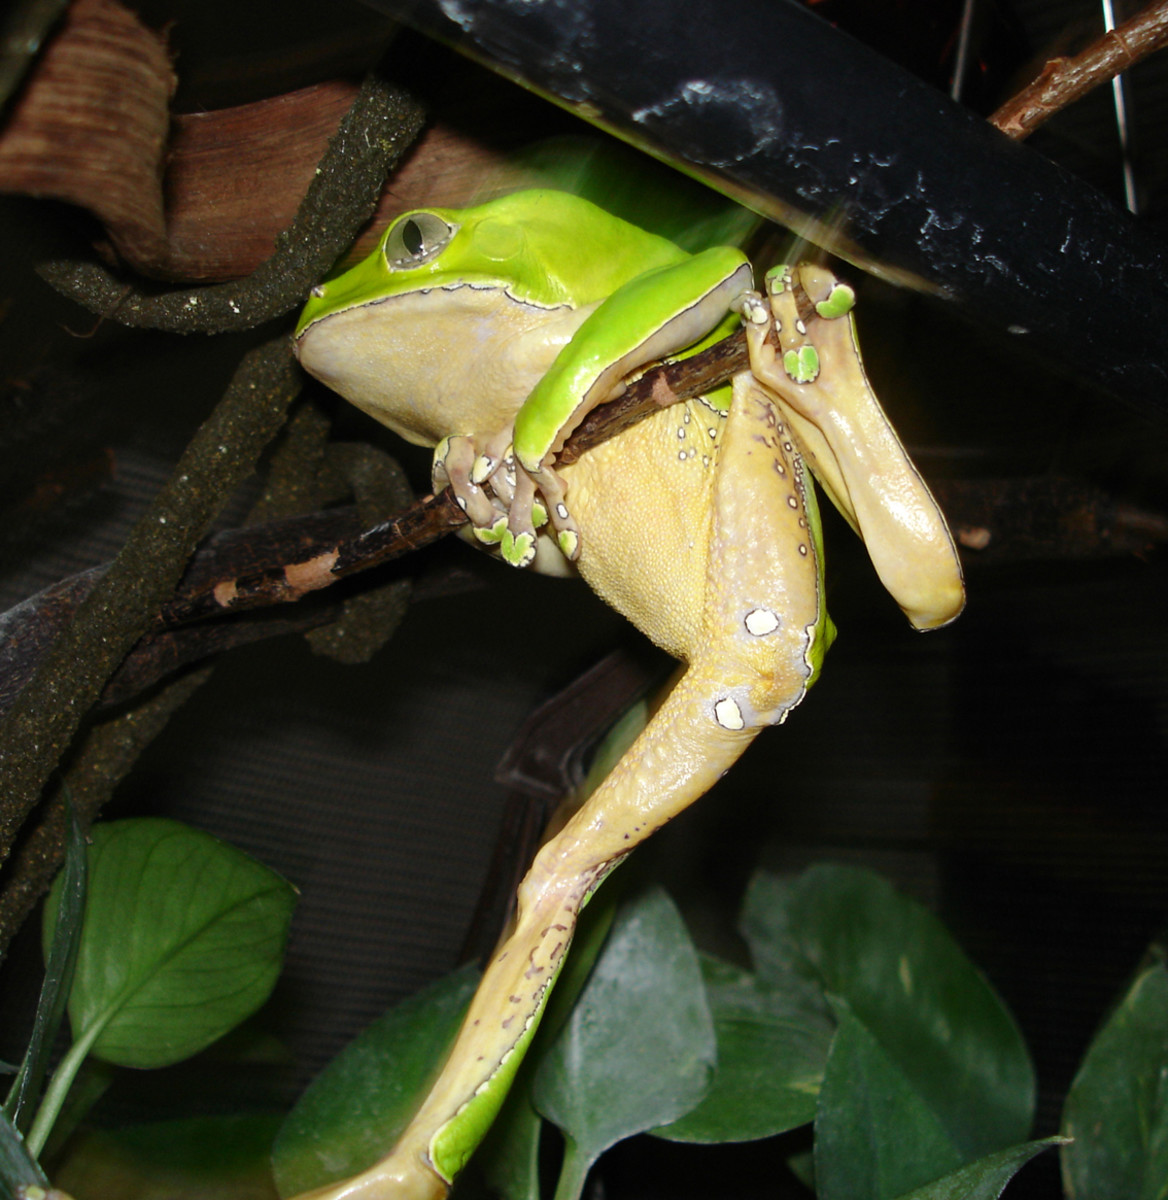 The giant waxy monkey frog likes thin branches which it can grap with its hands